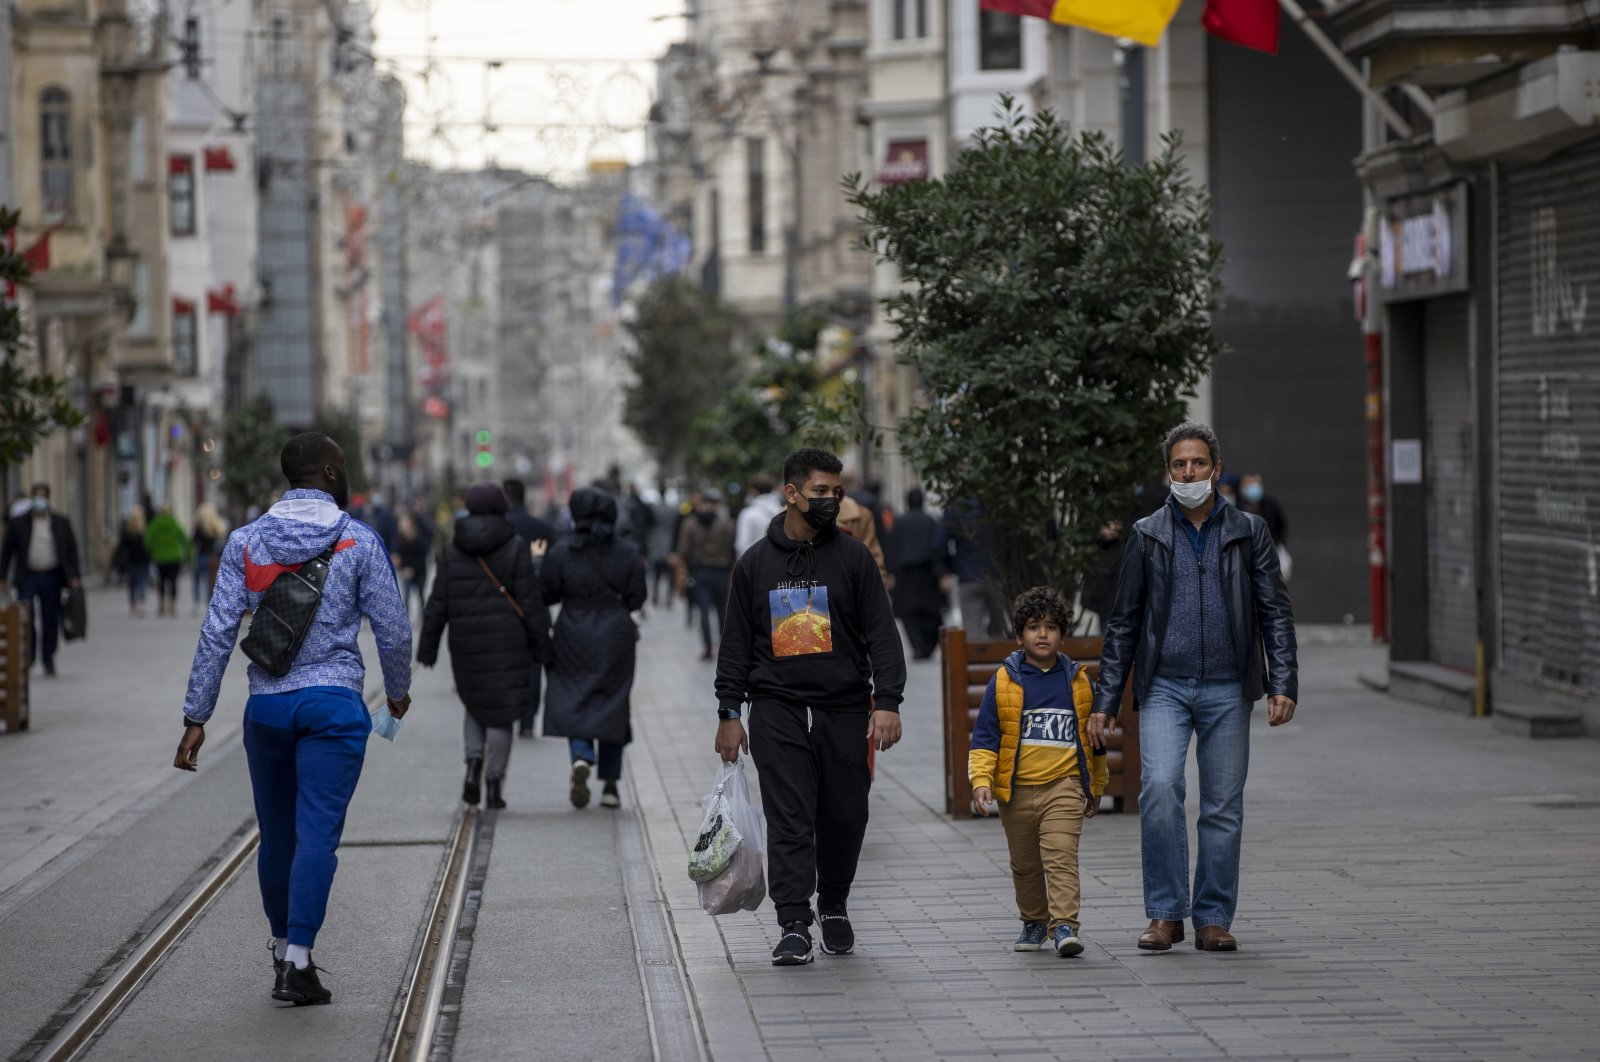 Foreign tourists walk on Istiklal Avenue during the weekend curfew, in Istanbul, Turkey, Dec. 26, 2020. (AA Photo)